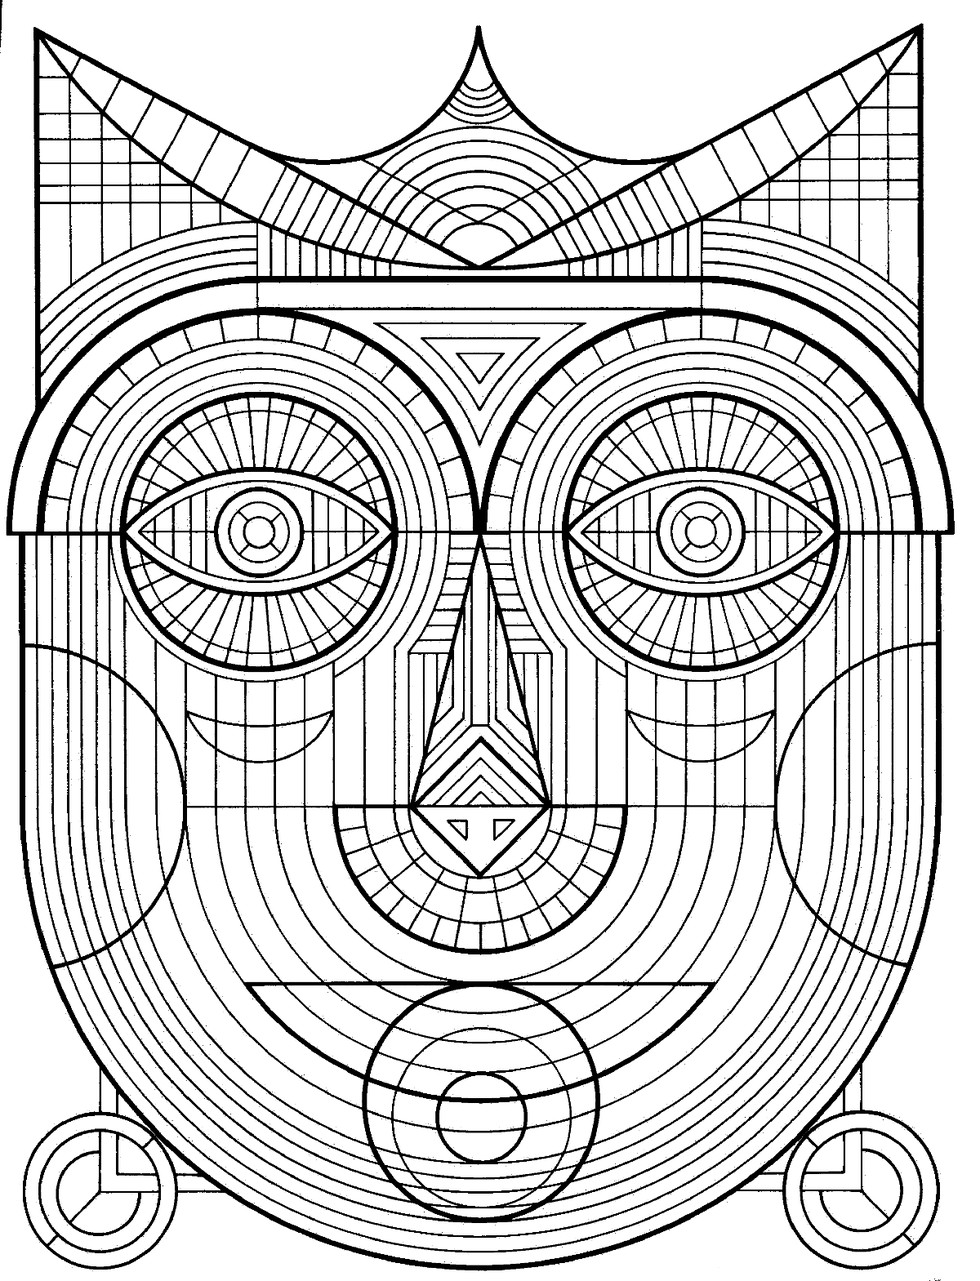 Stress relief coloring pages mandala - These Printable Mandala And Abstract Coloring Pages Relieve Stress And Help You Meditate